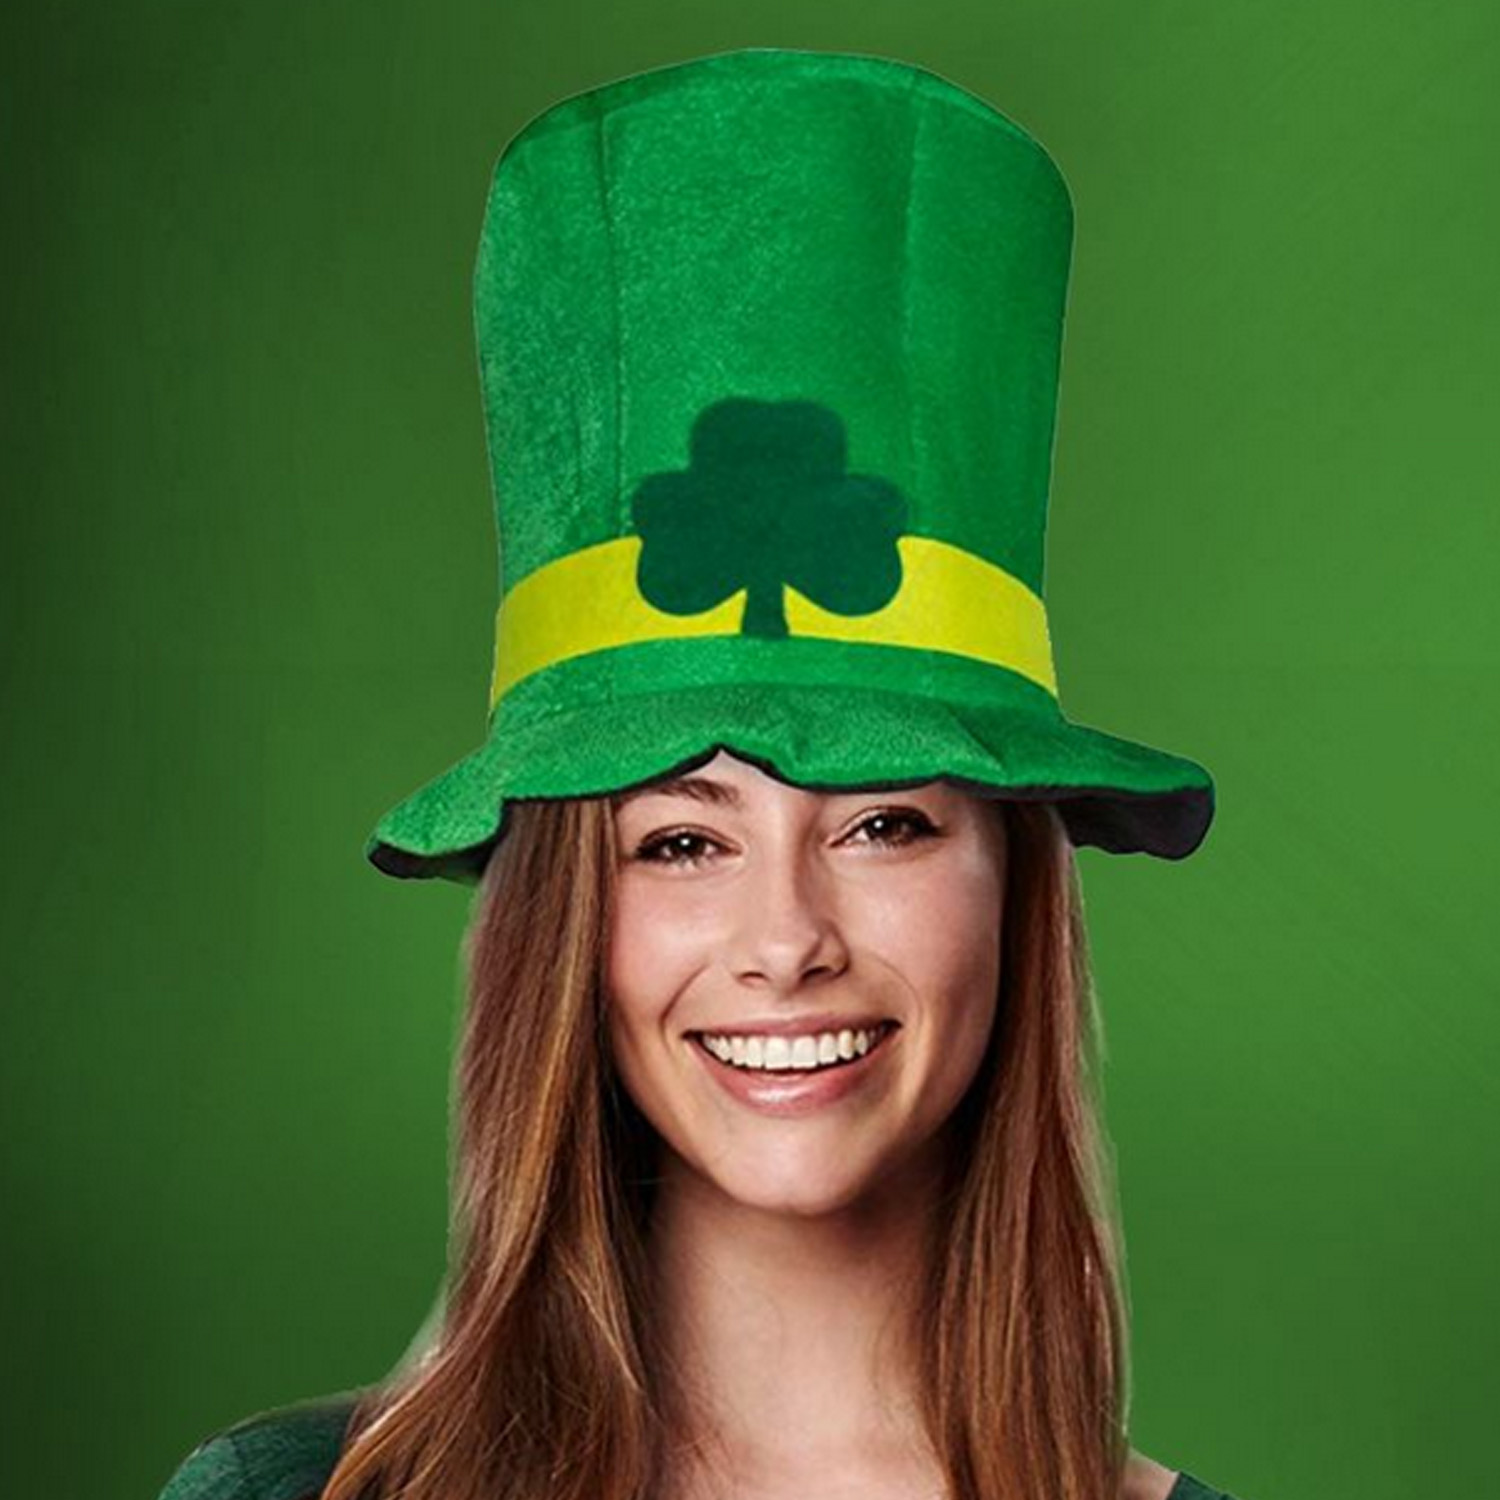 Besegad Saint St Patricks Day Lucky Charm Green Hat Costume Accessories For Irish Fun Party Celebration